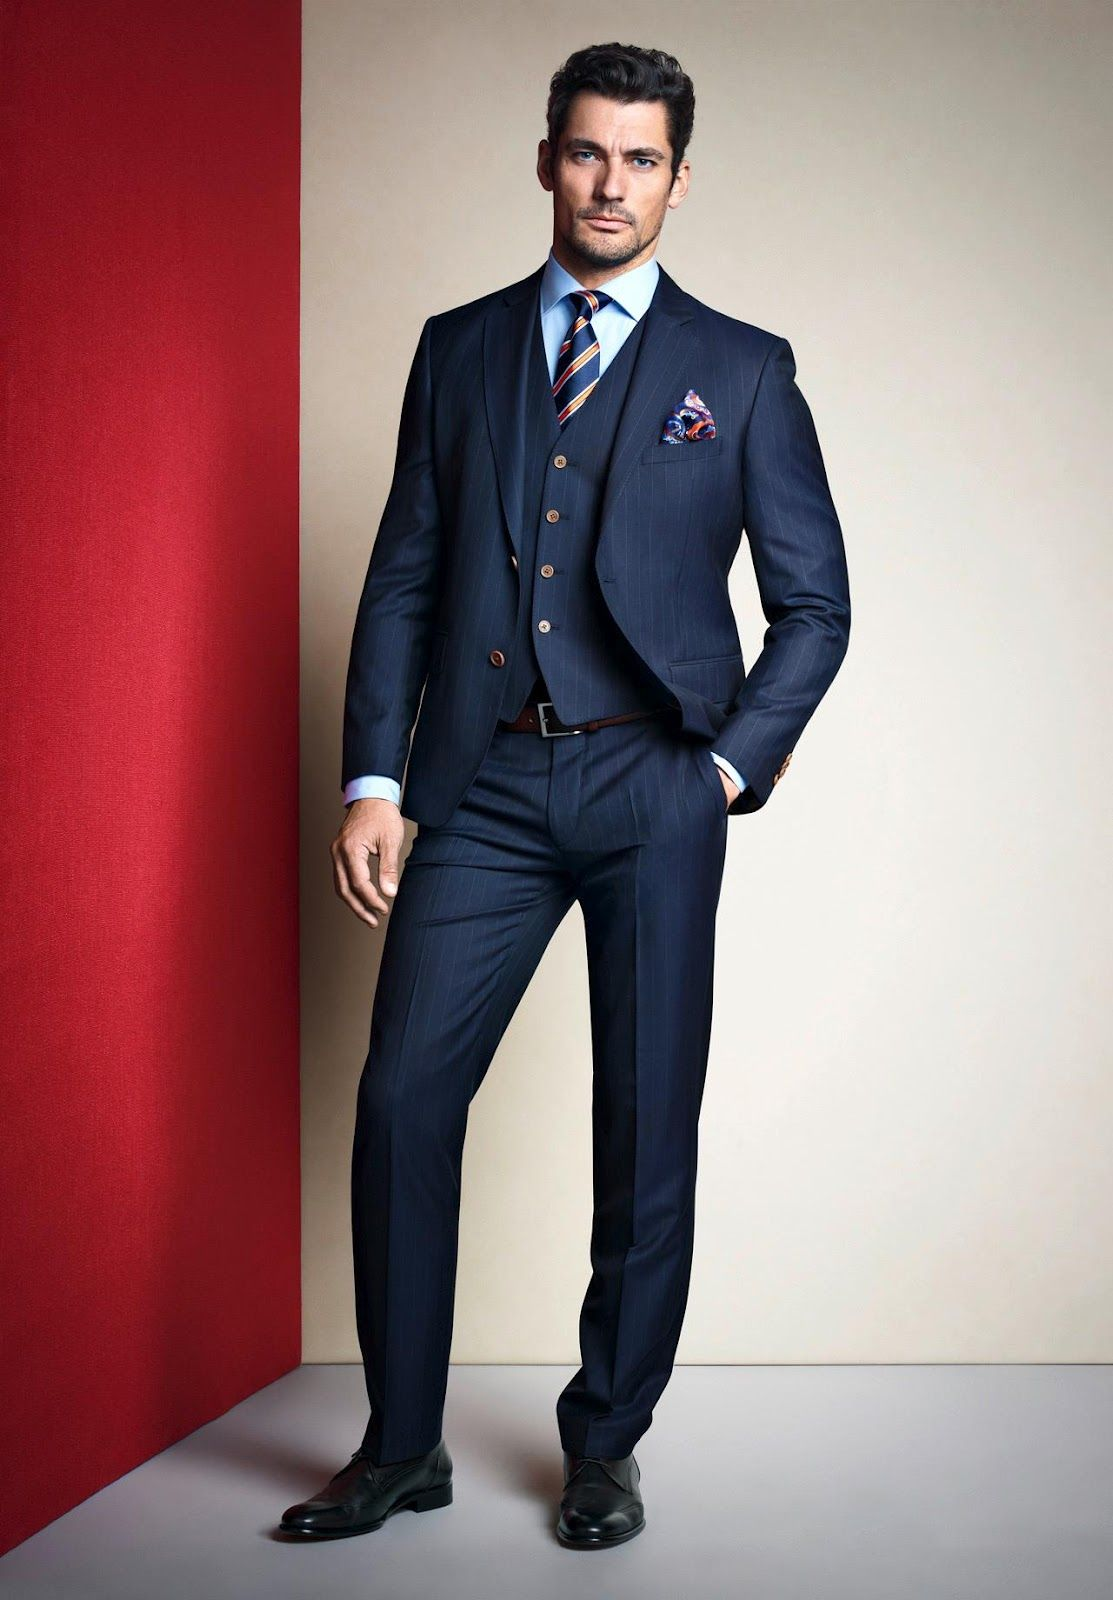 1b046ec36d2d3 Stunning dark navy pinstripe suit with brown buttons and a floral pocket  square.